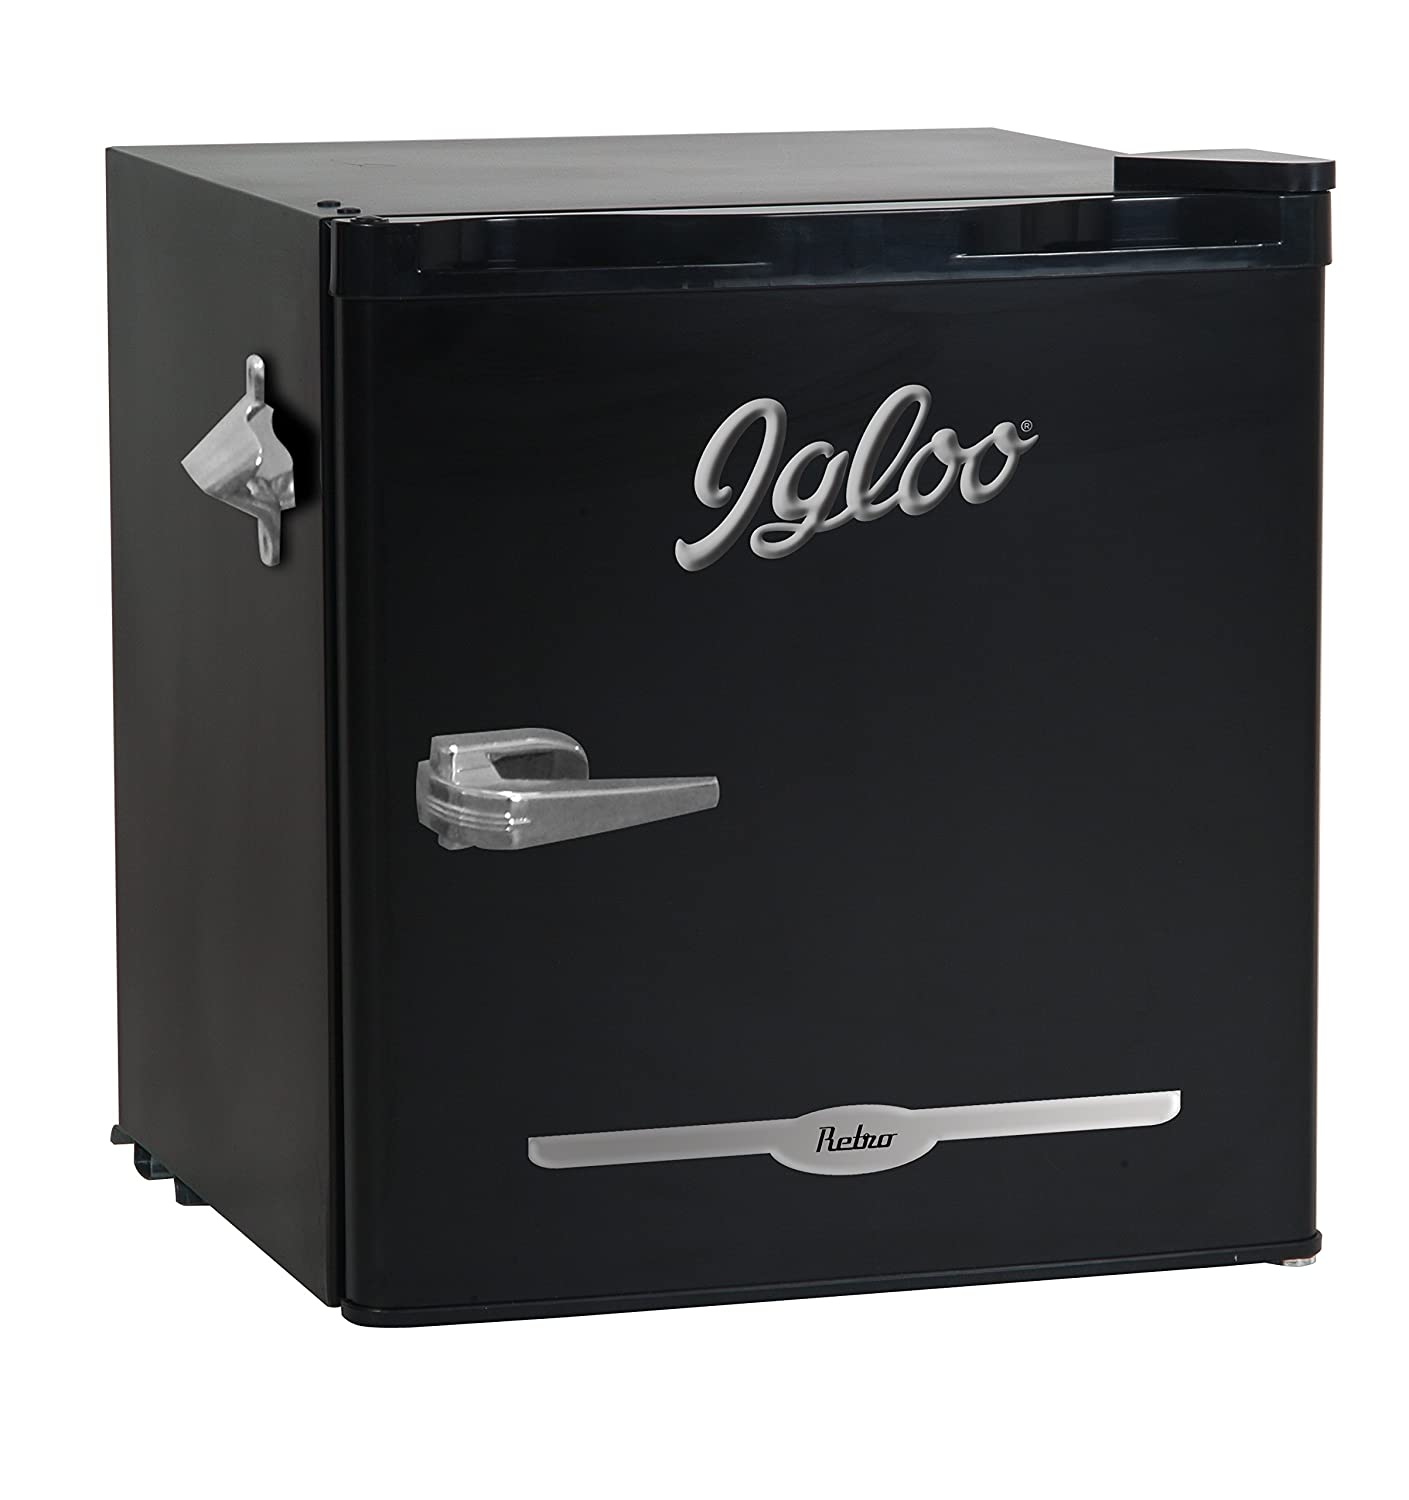 Igloo FR176-BLACK 1.6 cu. ft. Retro Bar Fridge with Side Bottle Opener, Black